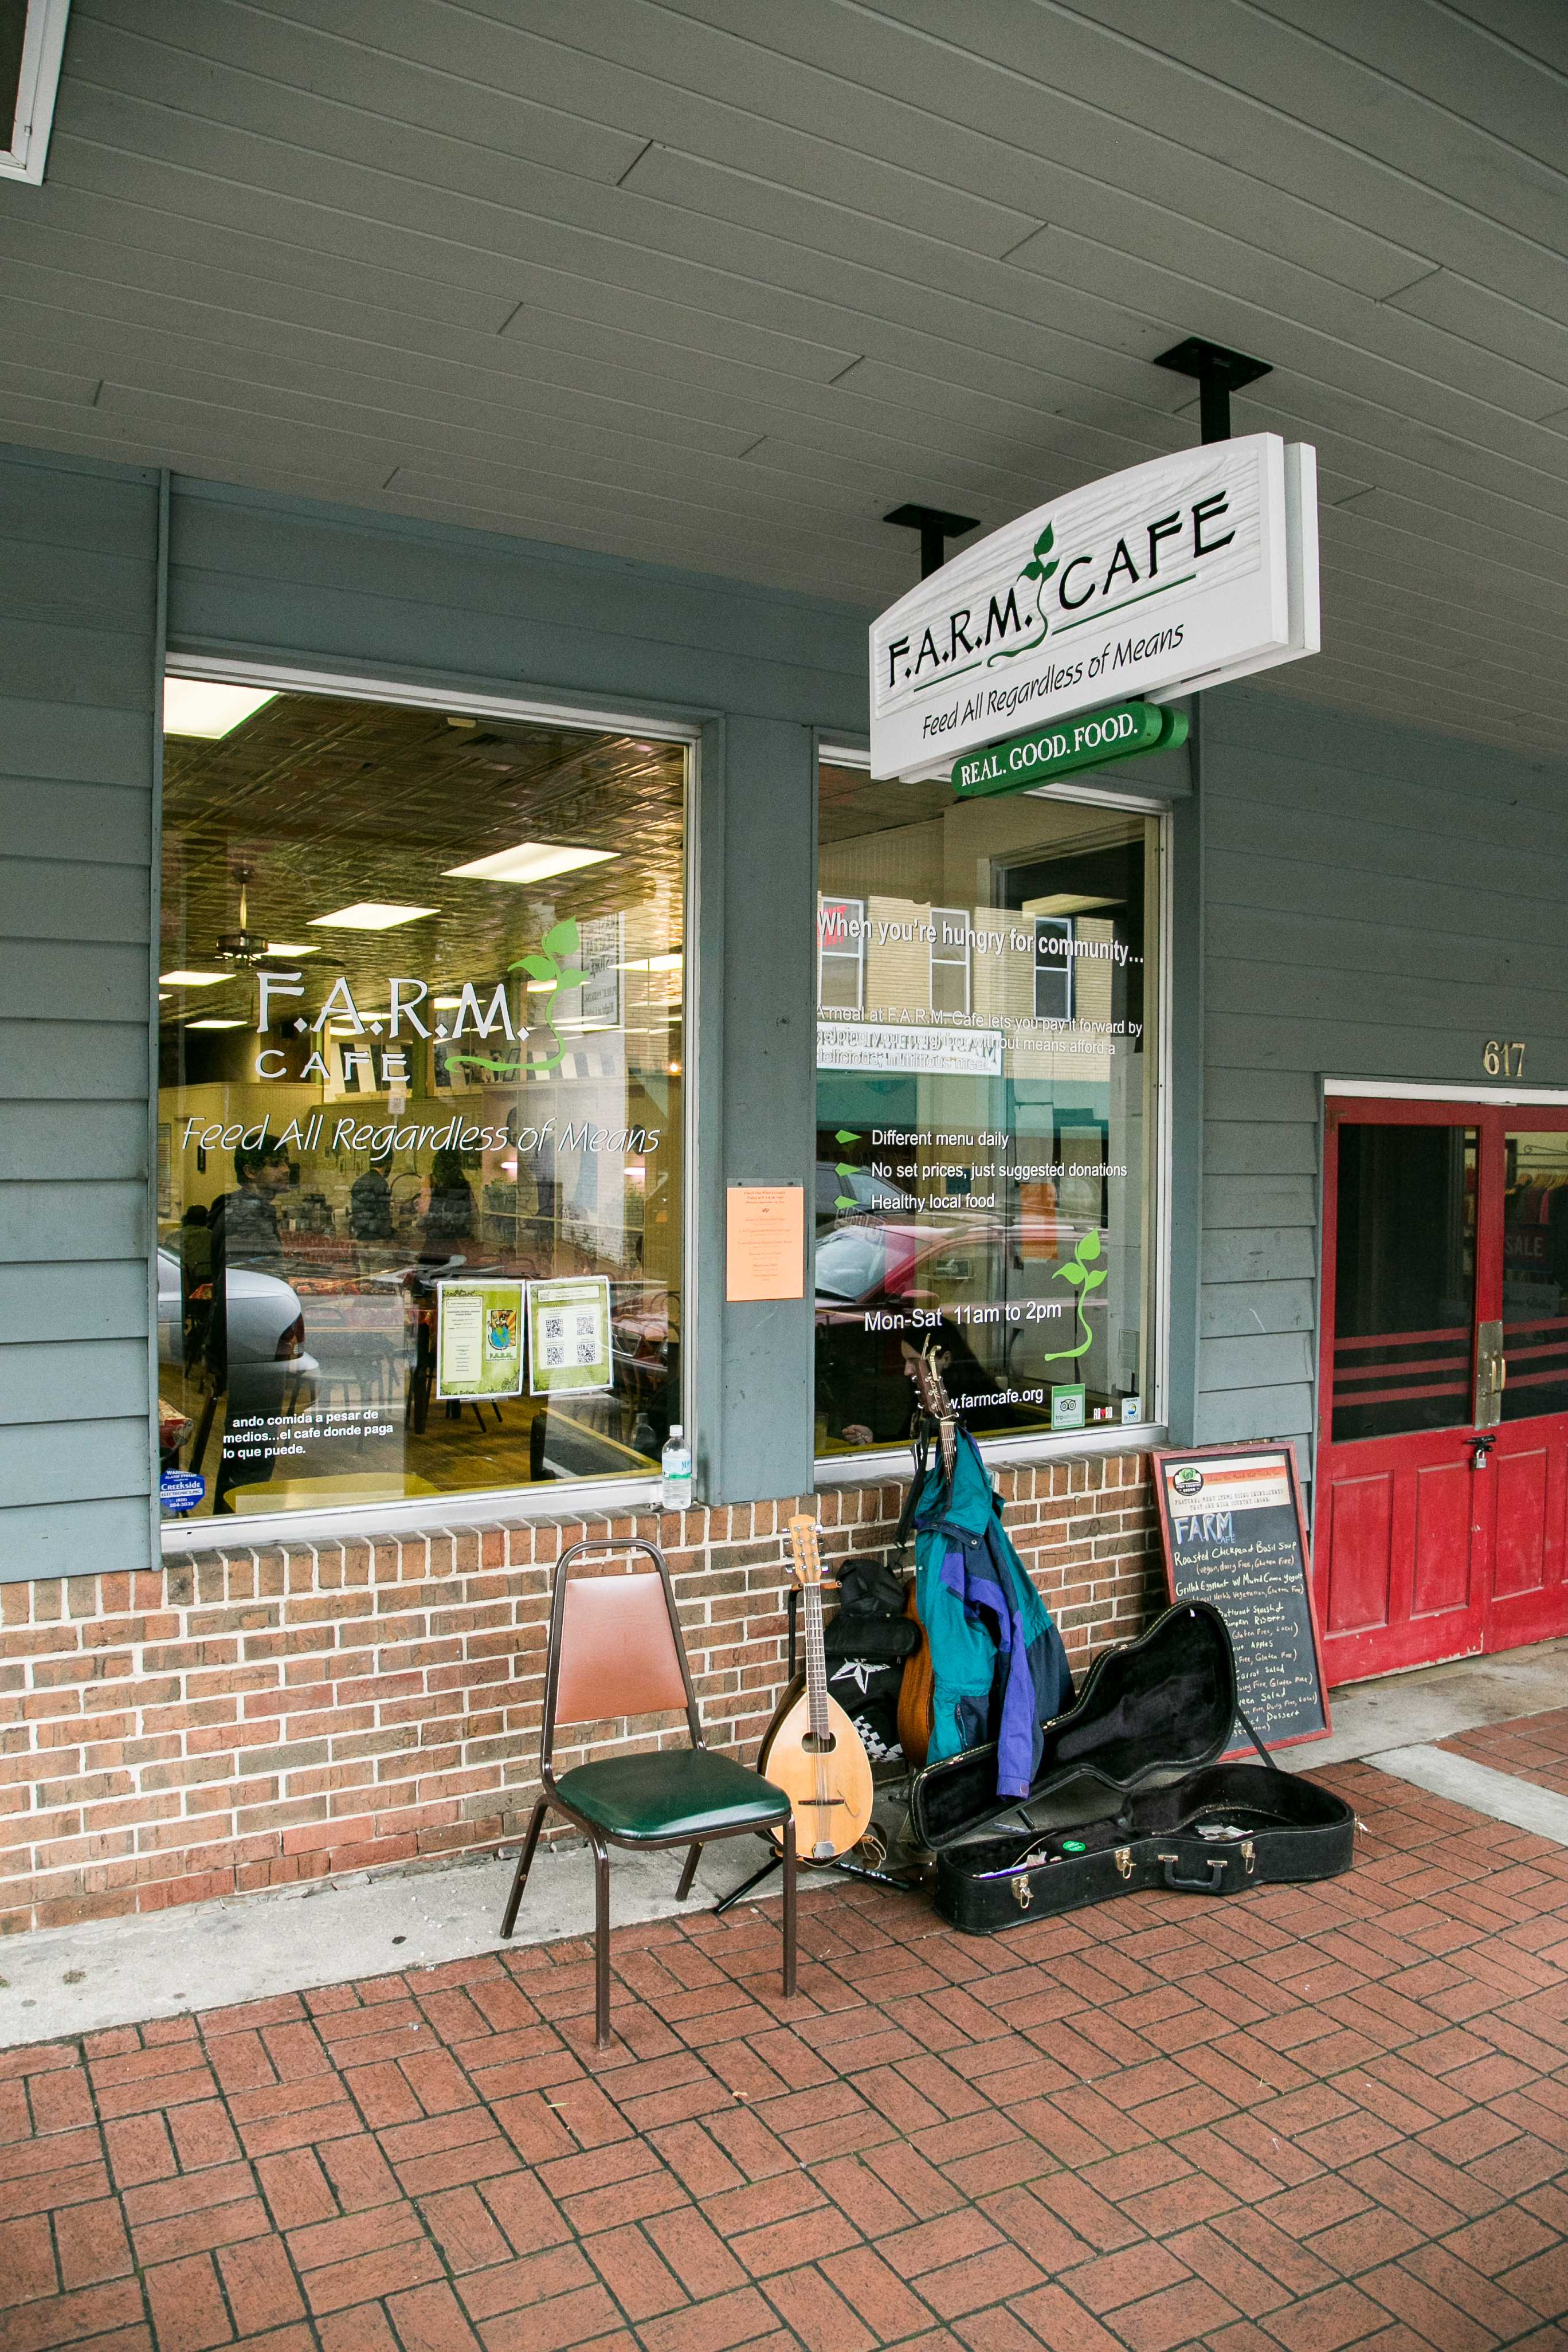 F.A.R.M. Cafe initiates monthly community gatherings